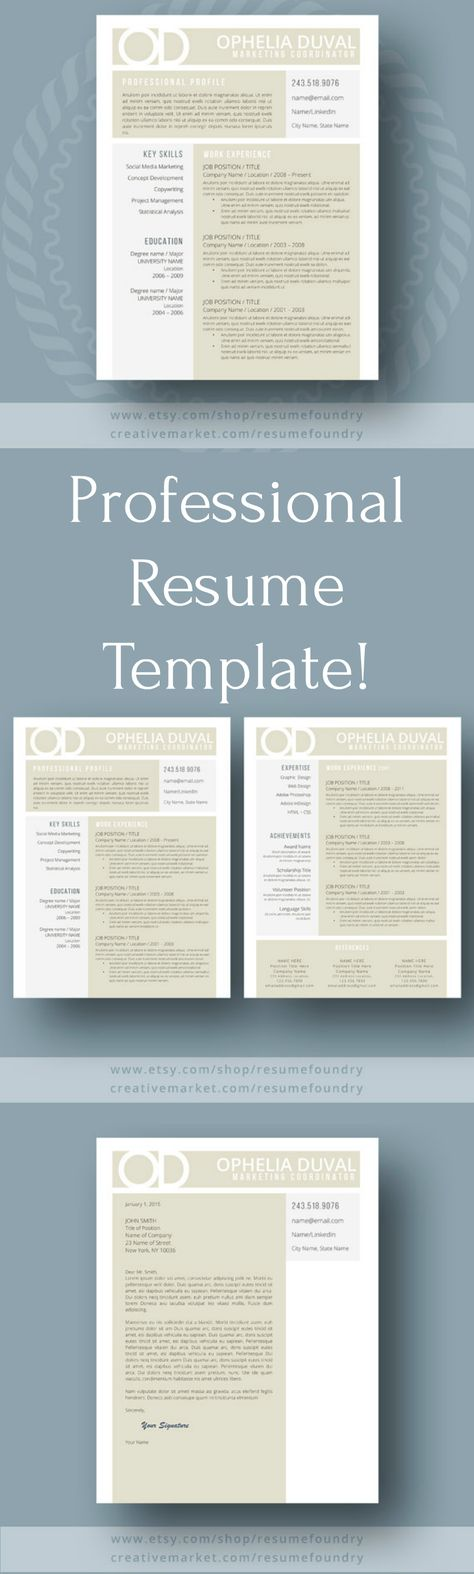 creative resume objective%0A     best Professional Resumes from Resume Foundry images on Pinterest    Resume templates  Resume tips and Cv resume template